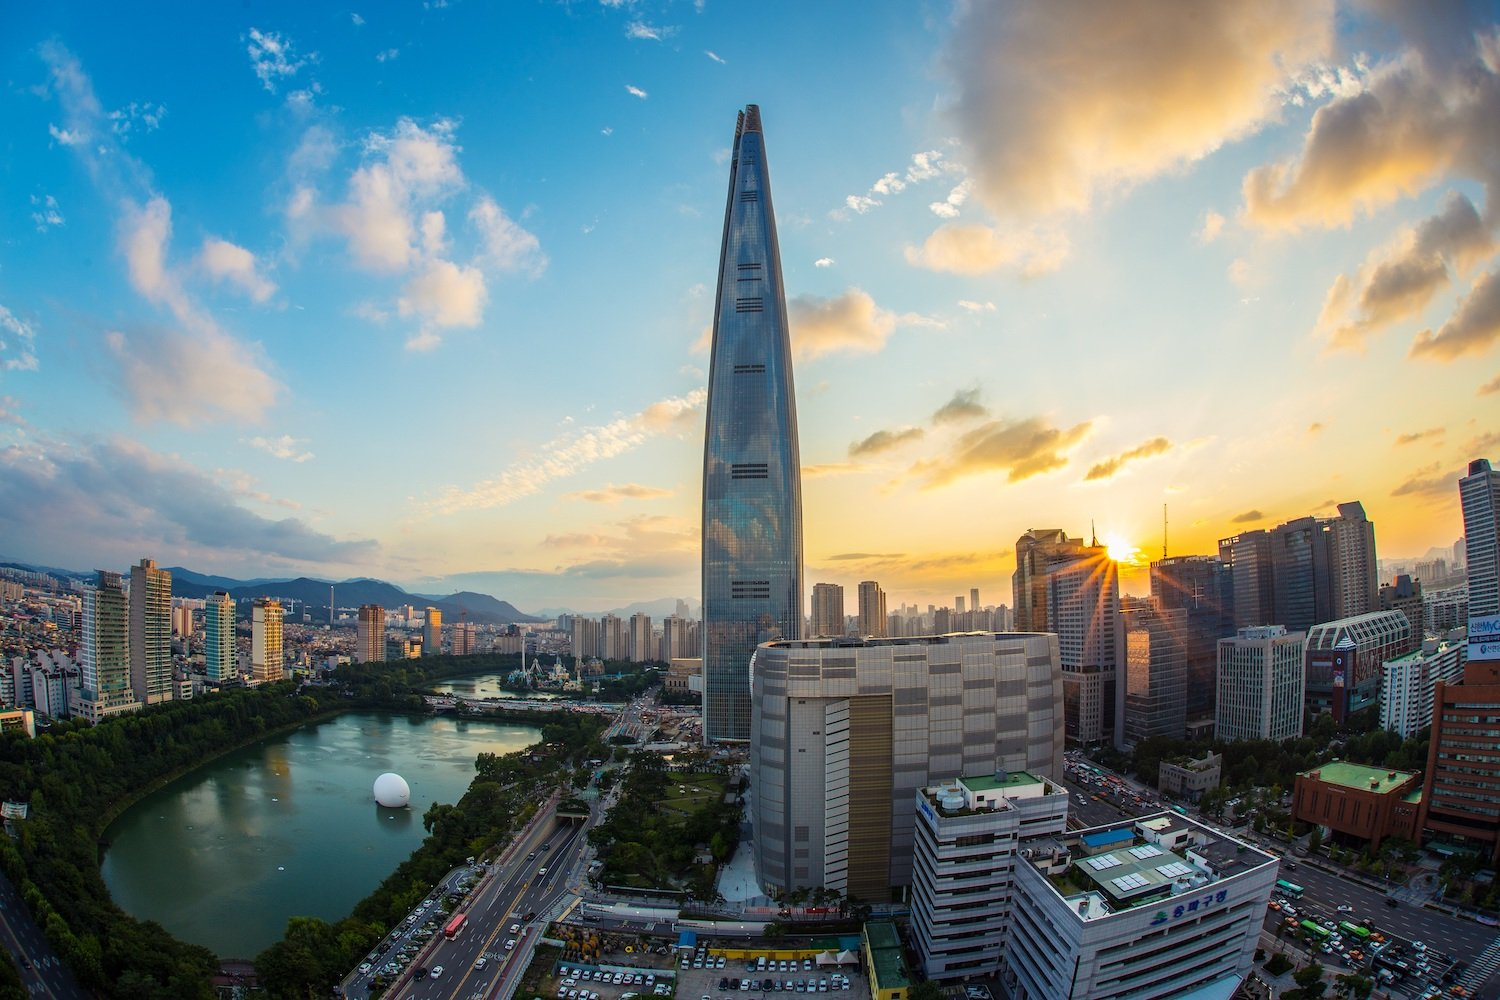 Lotte World Tower Seula - Korejas viza